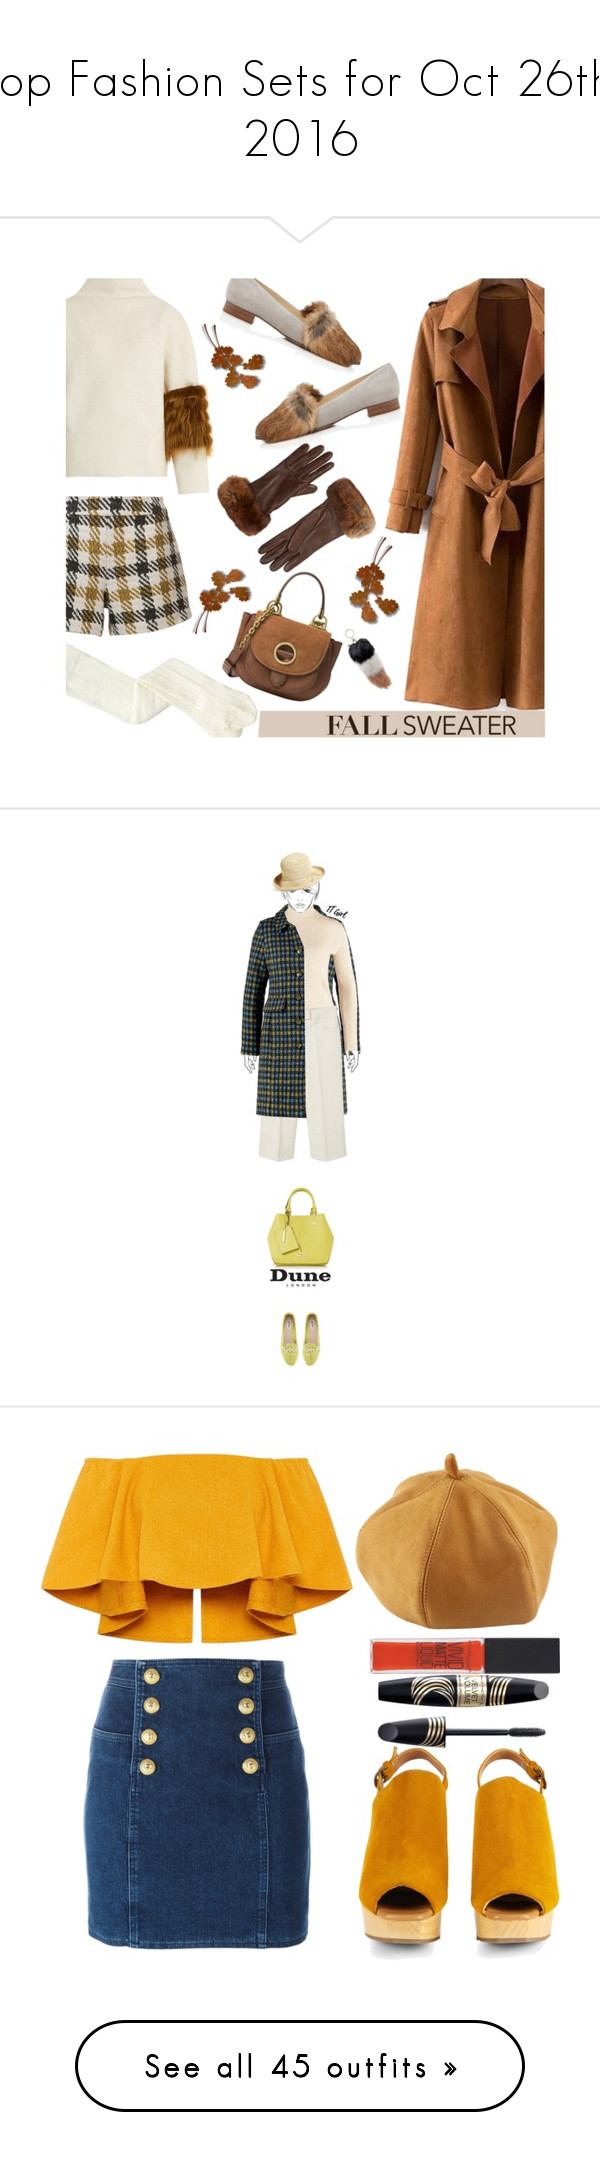 """Top Fashion Sets for Oct 26th, 2016"" by polyvore ❤ liked on Polyvore featuring Saks Potts, Alice + Olivia, Alexandre Birman, Jocelyn, Barneys New York, MICHAEL Michael Kors, polyvorecommunity, polyvoreeditorial, fallsweaters and Dorothy Perkins"